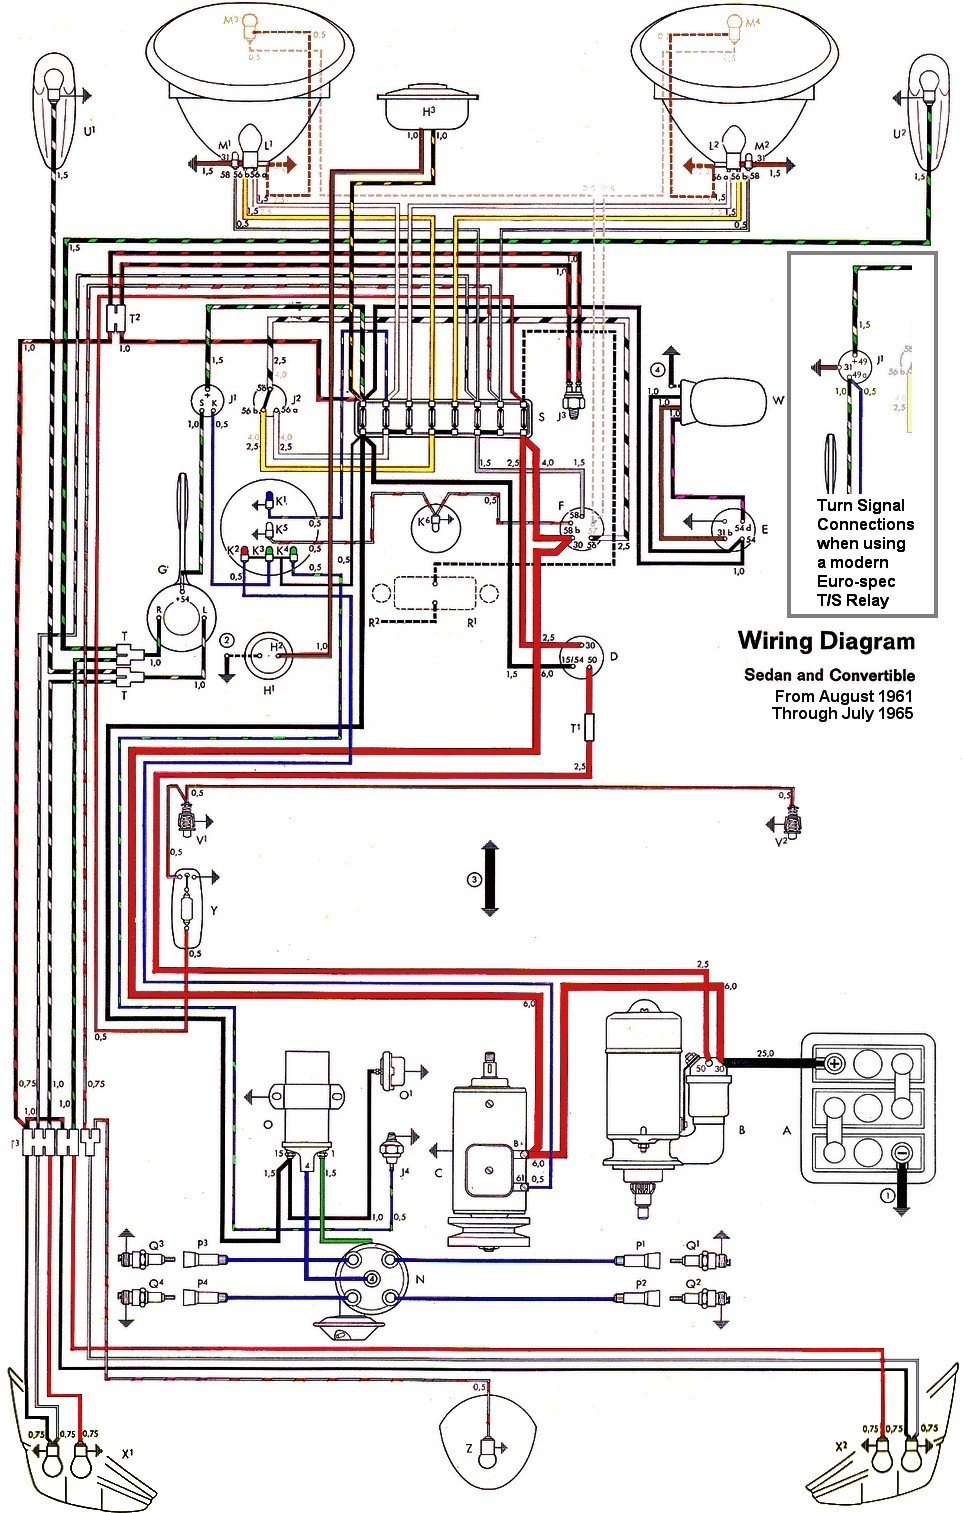 bug_62 65withinset vw wiring harness diagram cj7 wiring harness diagram \u2022 wiring Wiring Harness Diagram at crackthecode.co